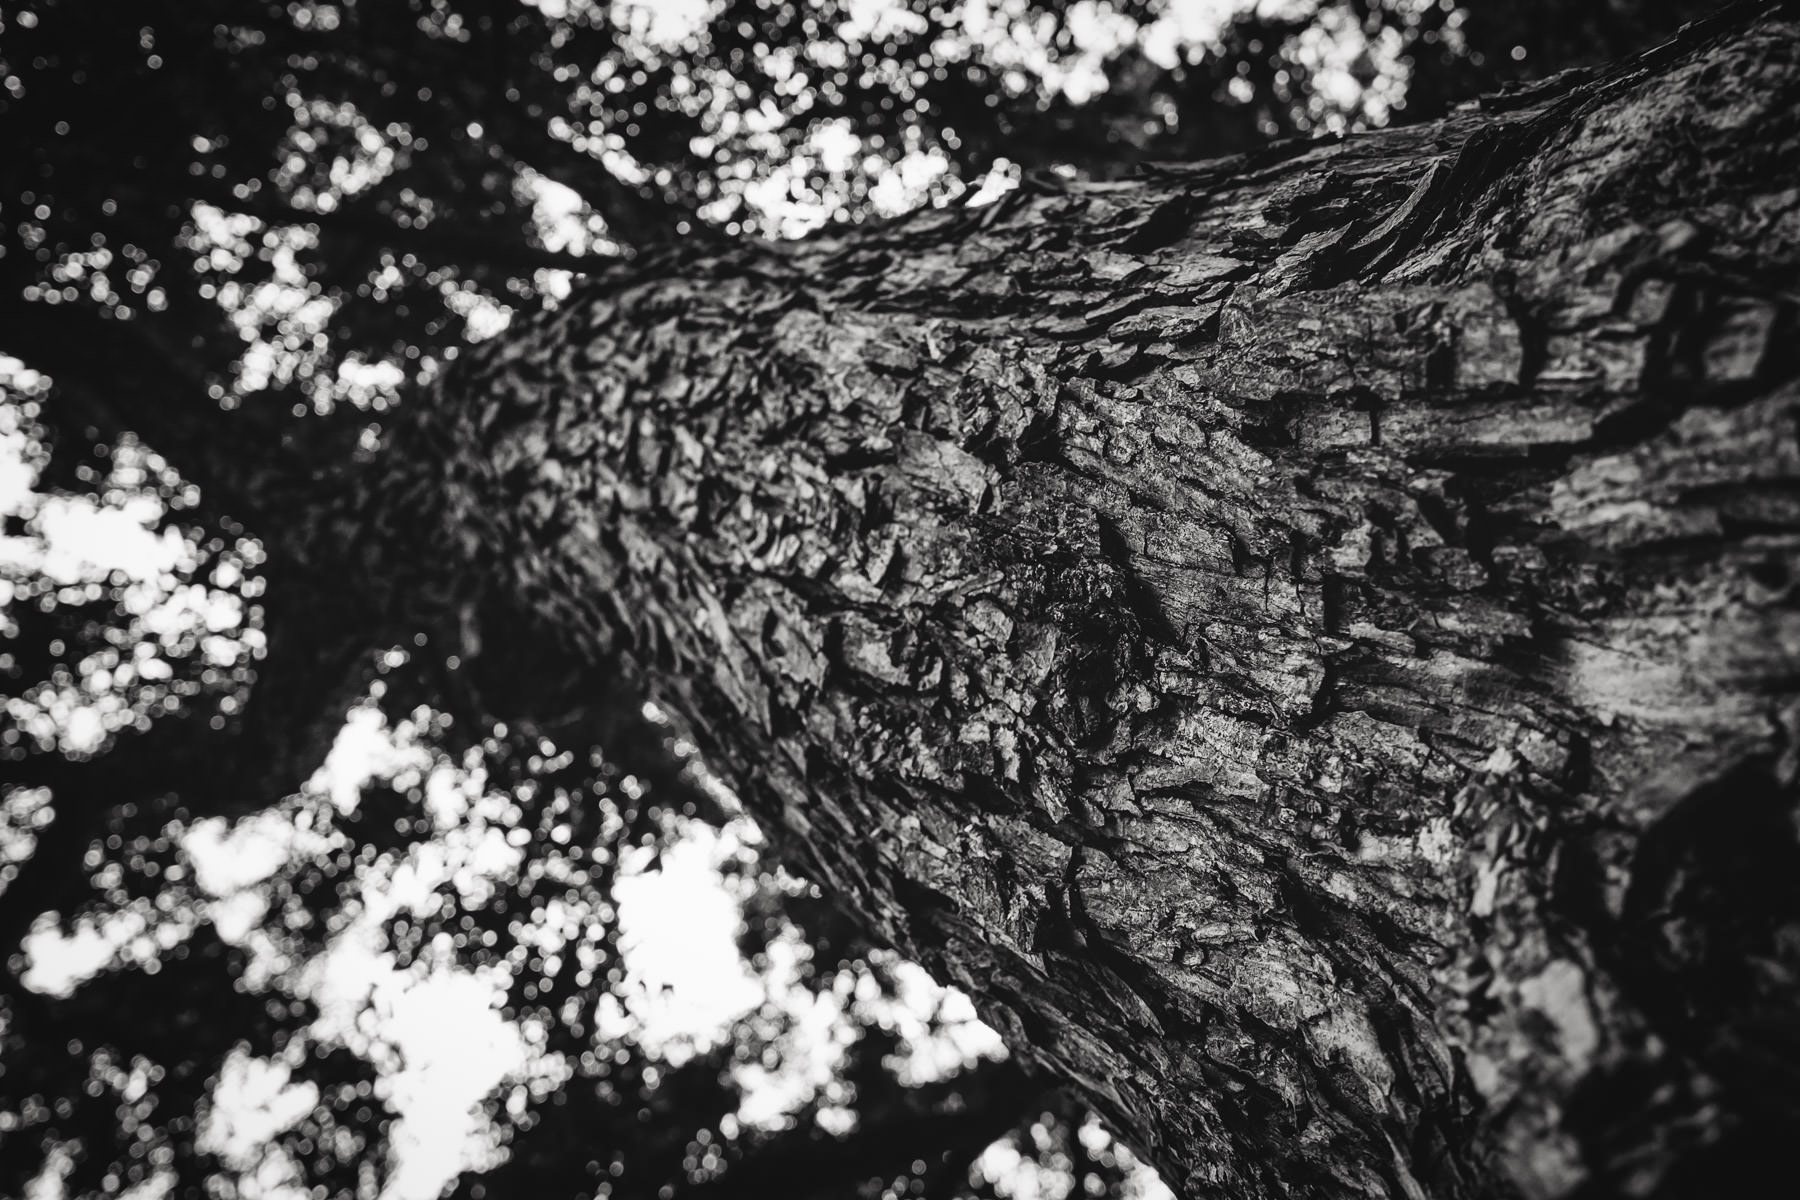 Detail of a tree's trunk, spotted in Austin, Texas' Zilker Park.